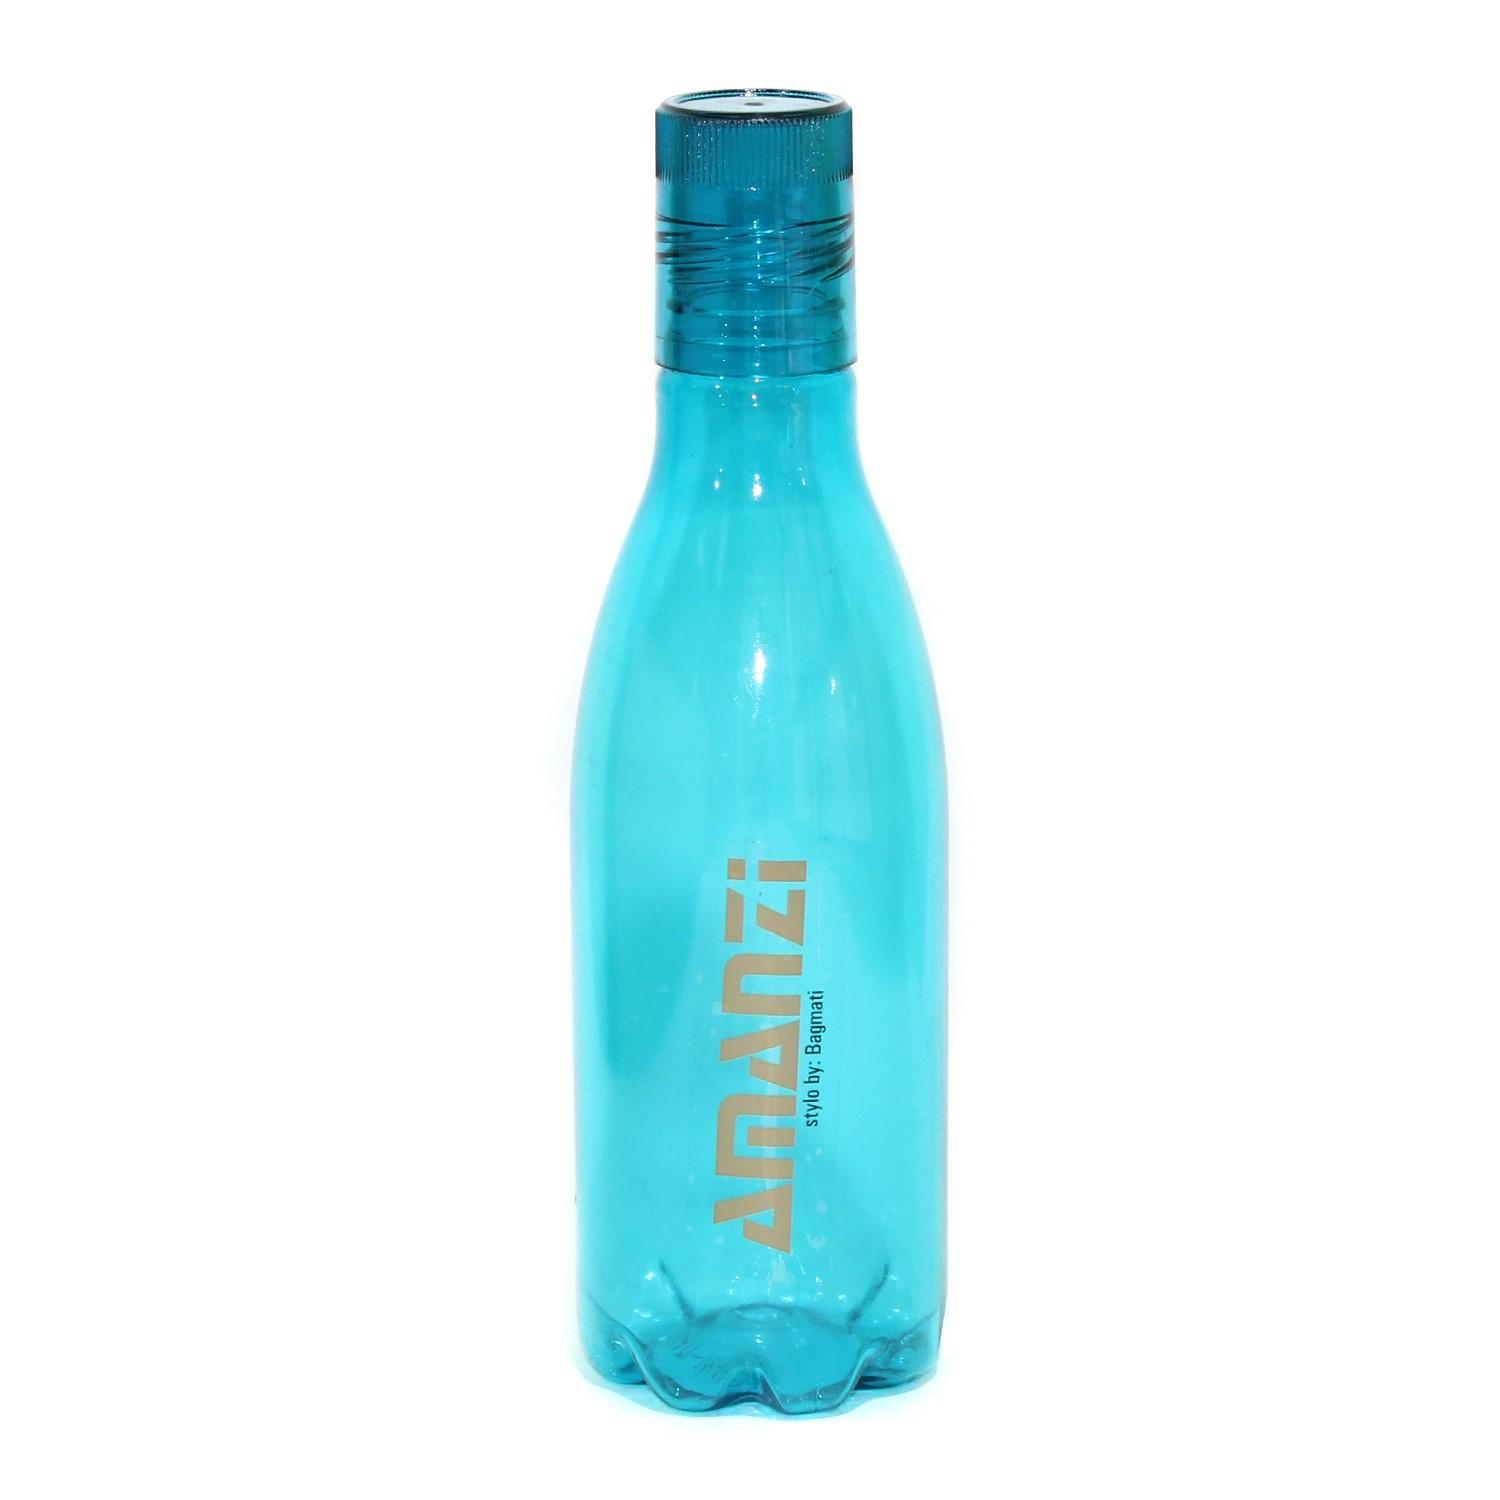 Bagmati Transparent Plastic Water Bottle - 500ml